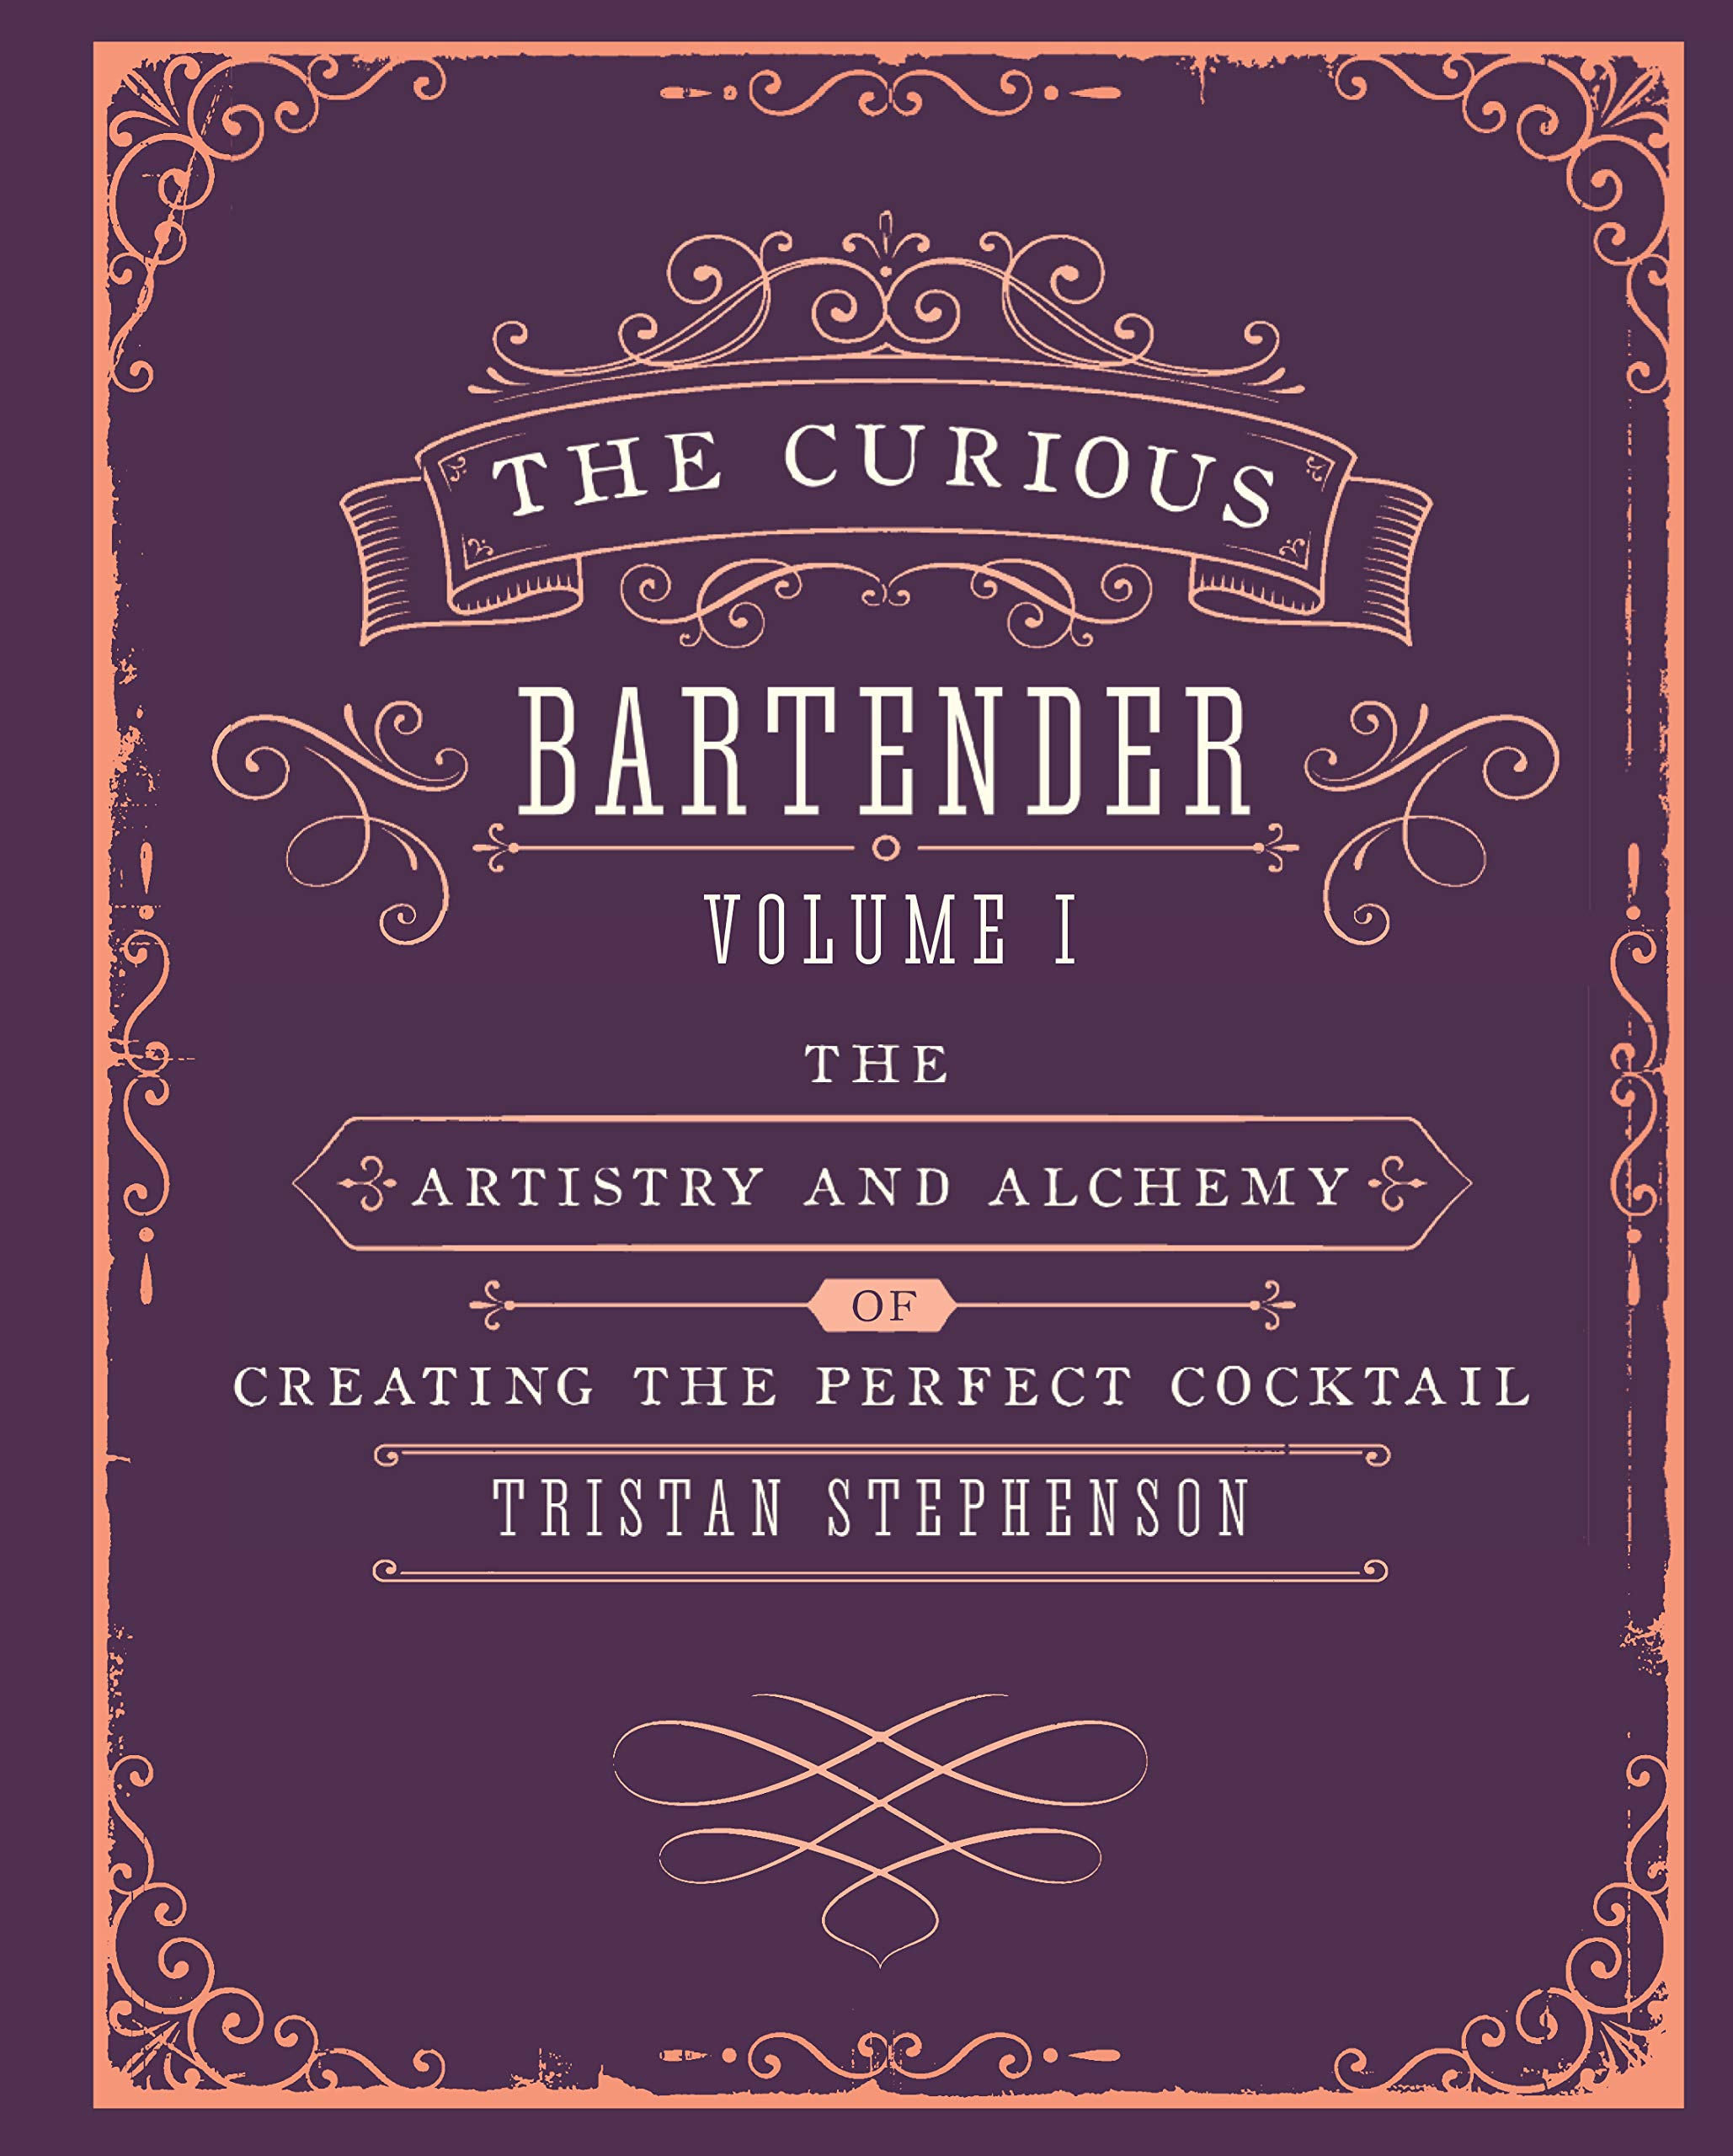 Image OfThe Curious Bartender: The Artistry And Alchemy Of Creating The Perfect Cocktail